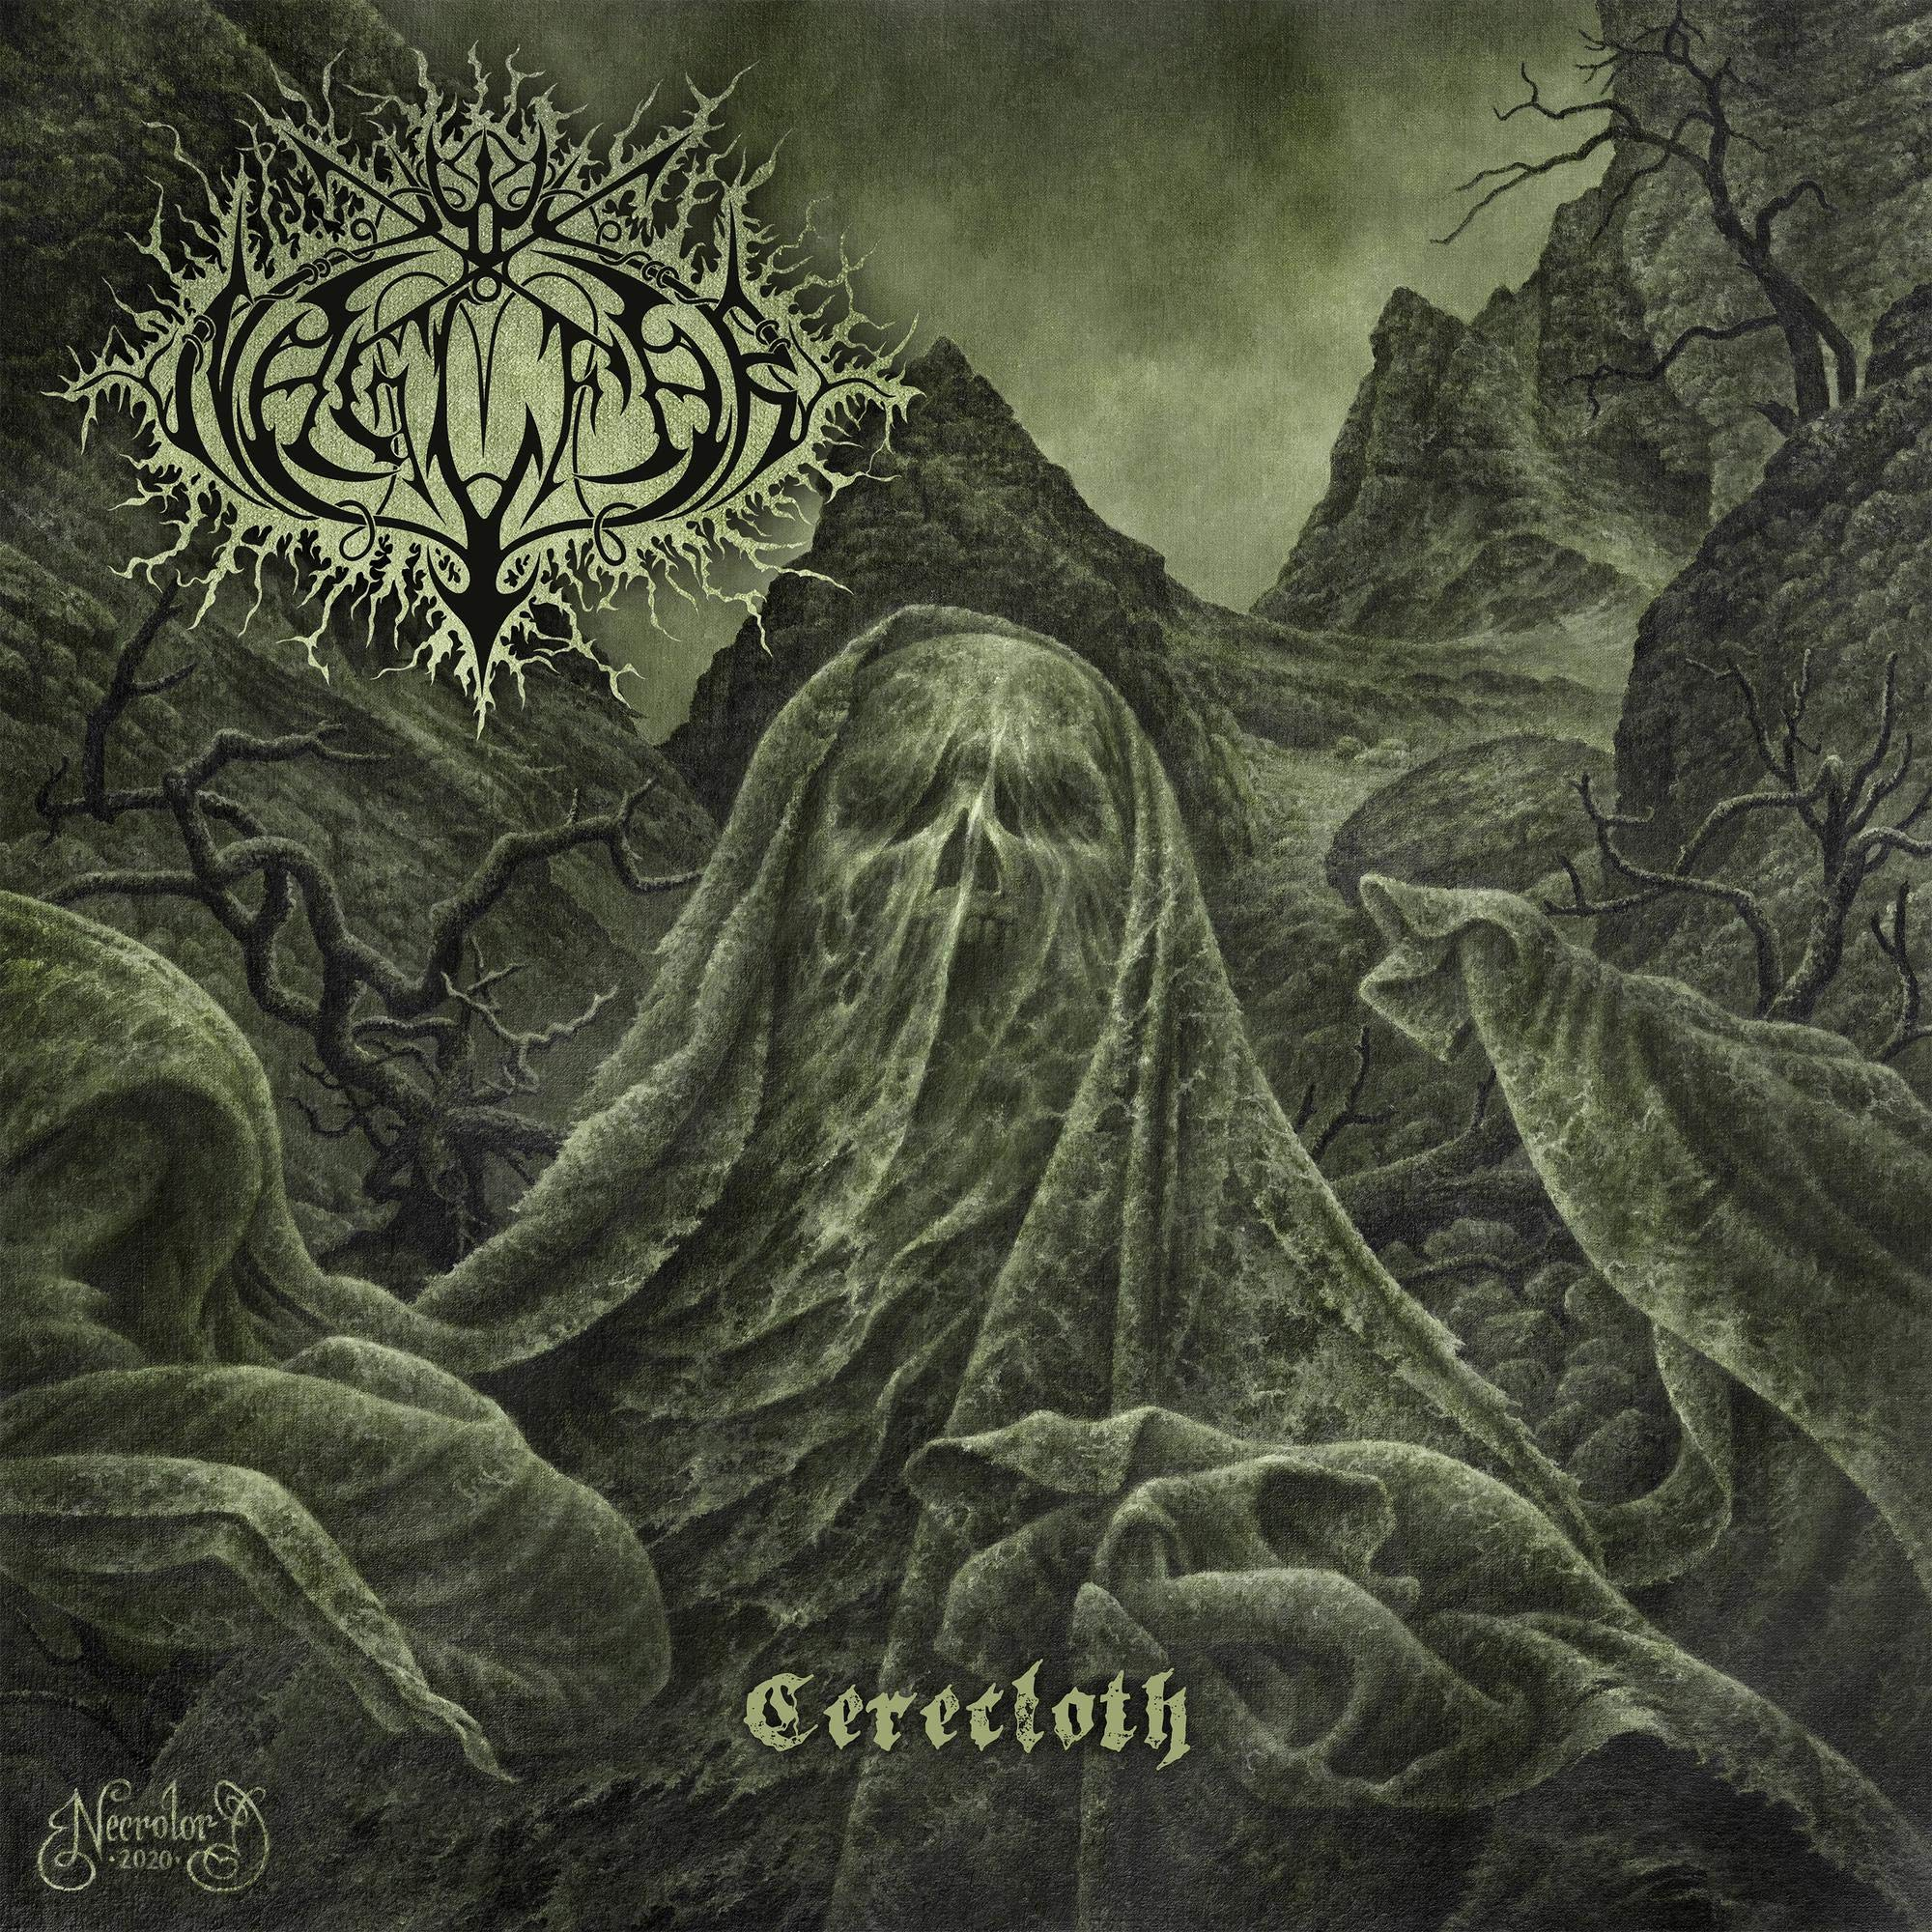 Naglfar - Cerecloth (2020) [FLAC] Download